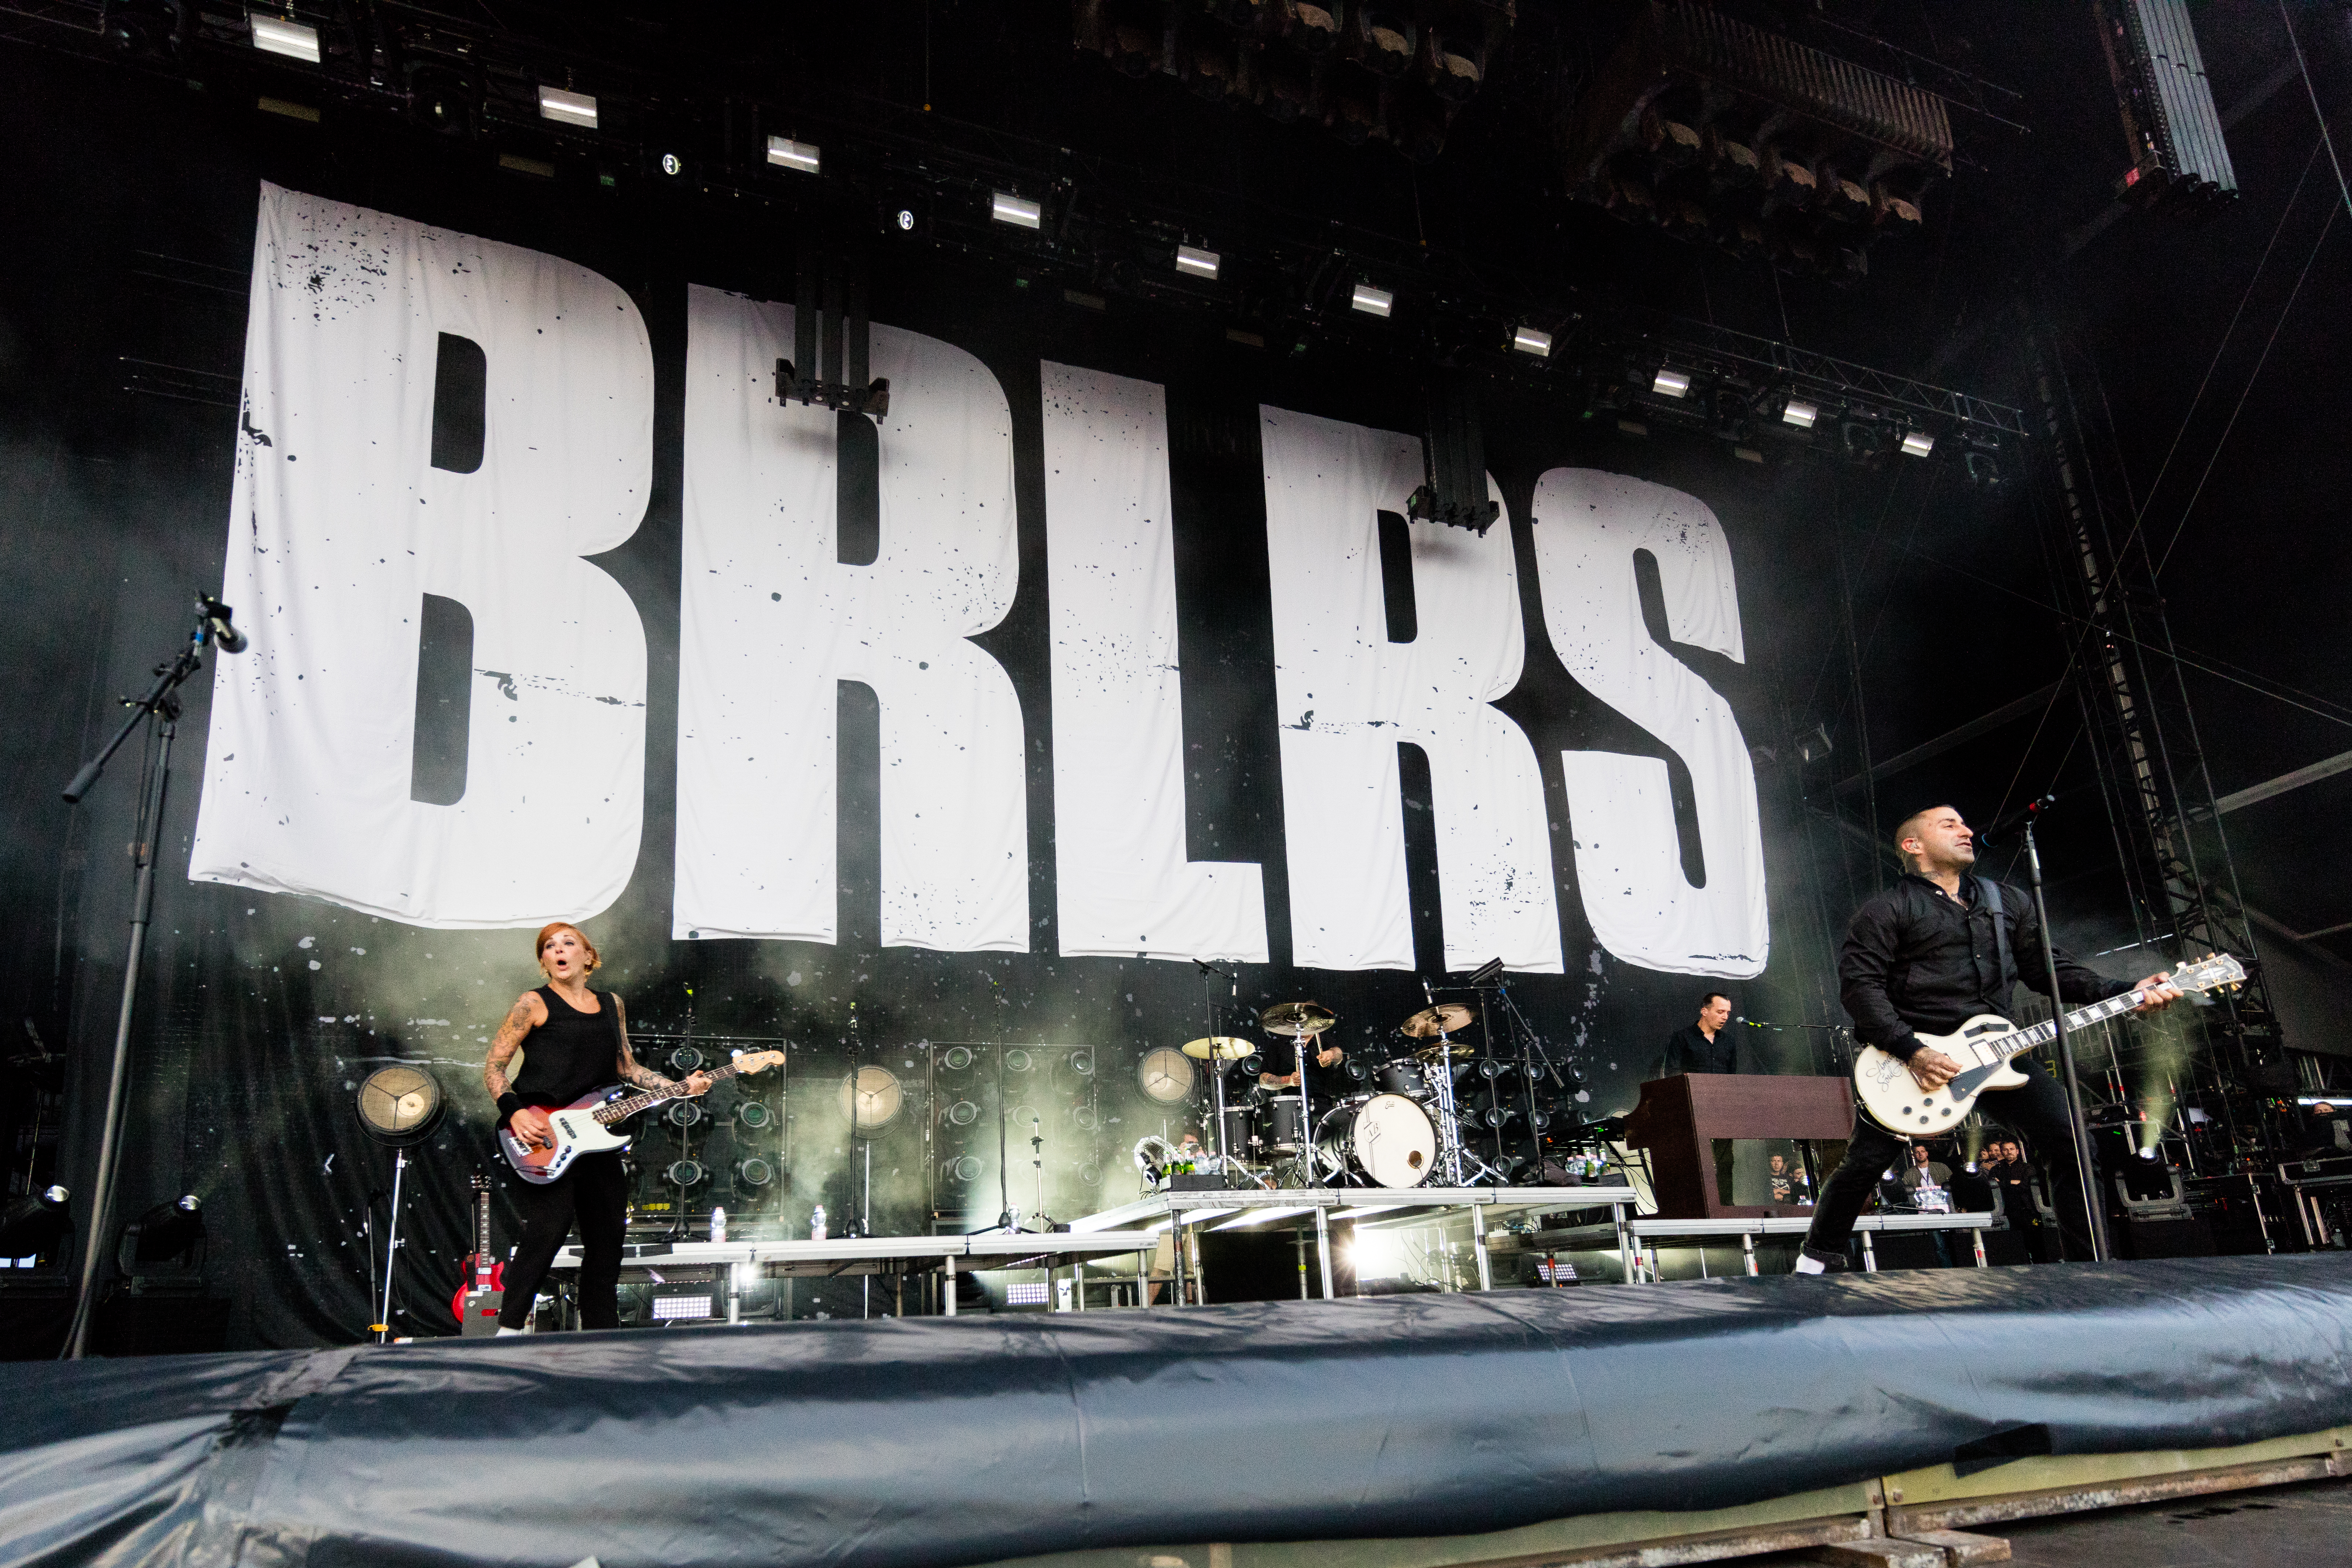 Datei:Broilers - 2017153202340 2017-06-02 Rock am Ring - Sven - 5DS ...